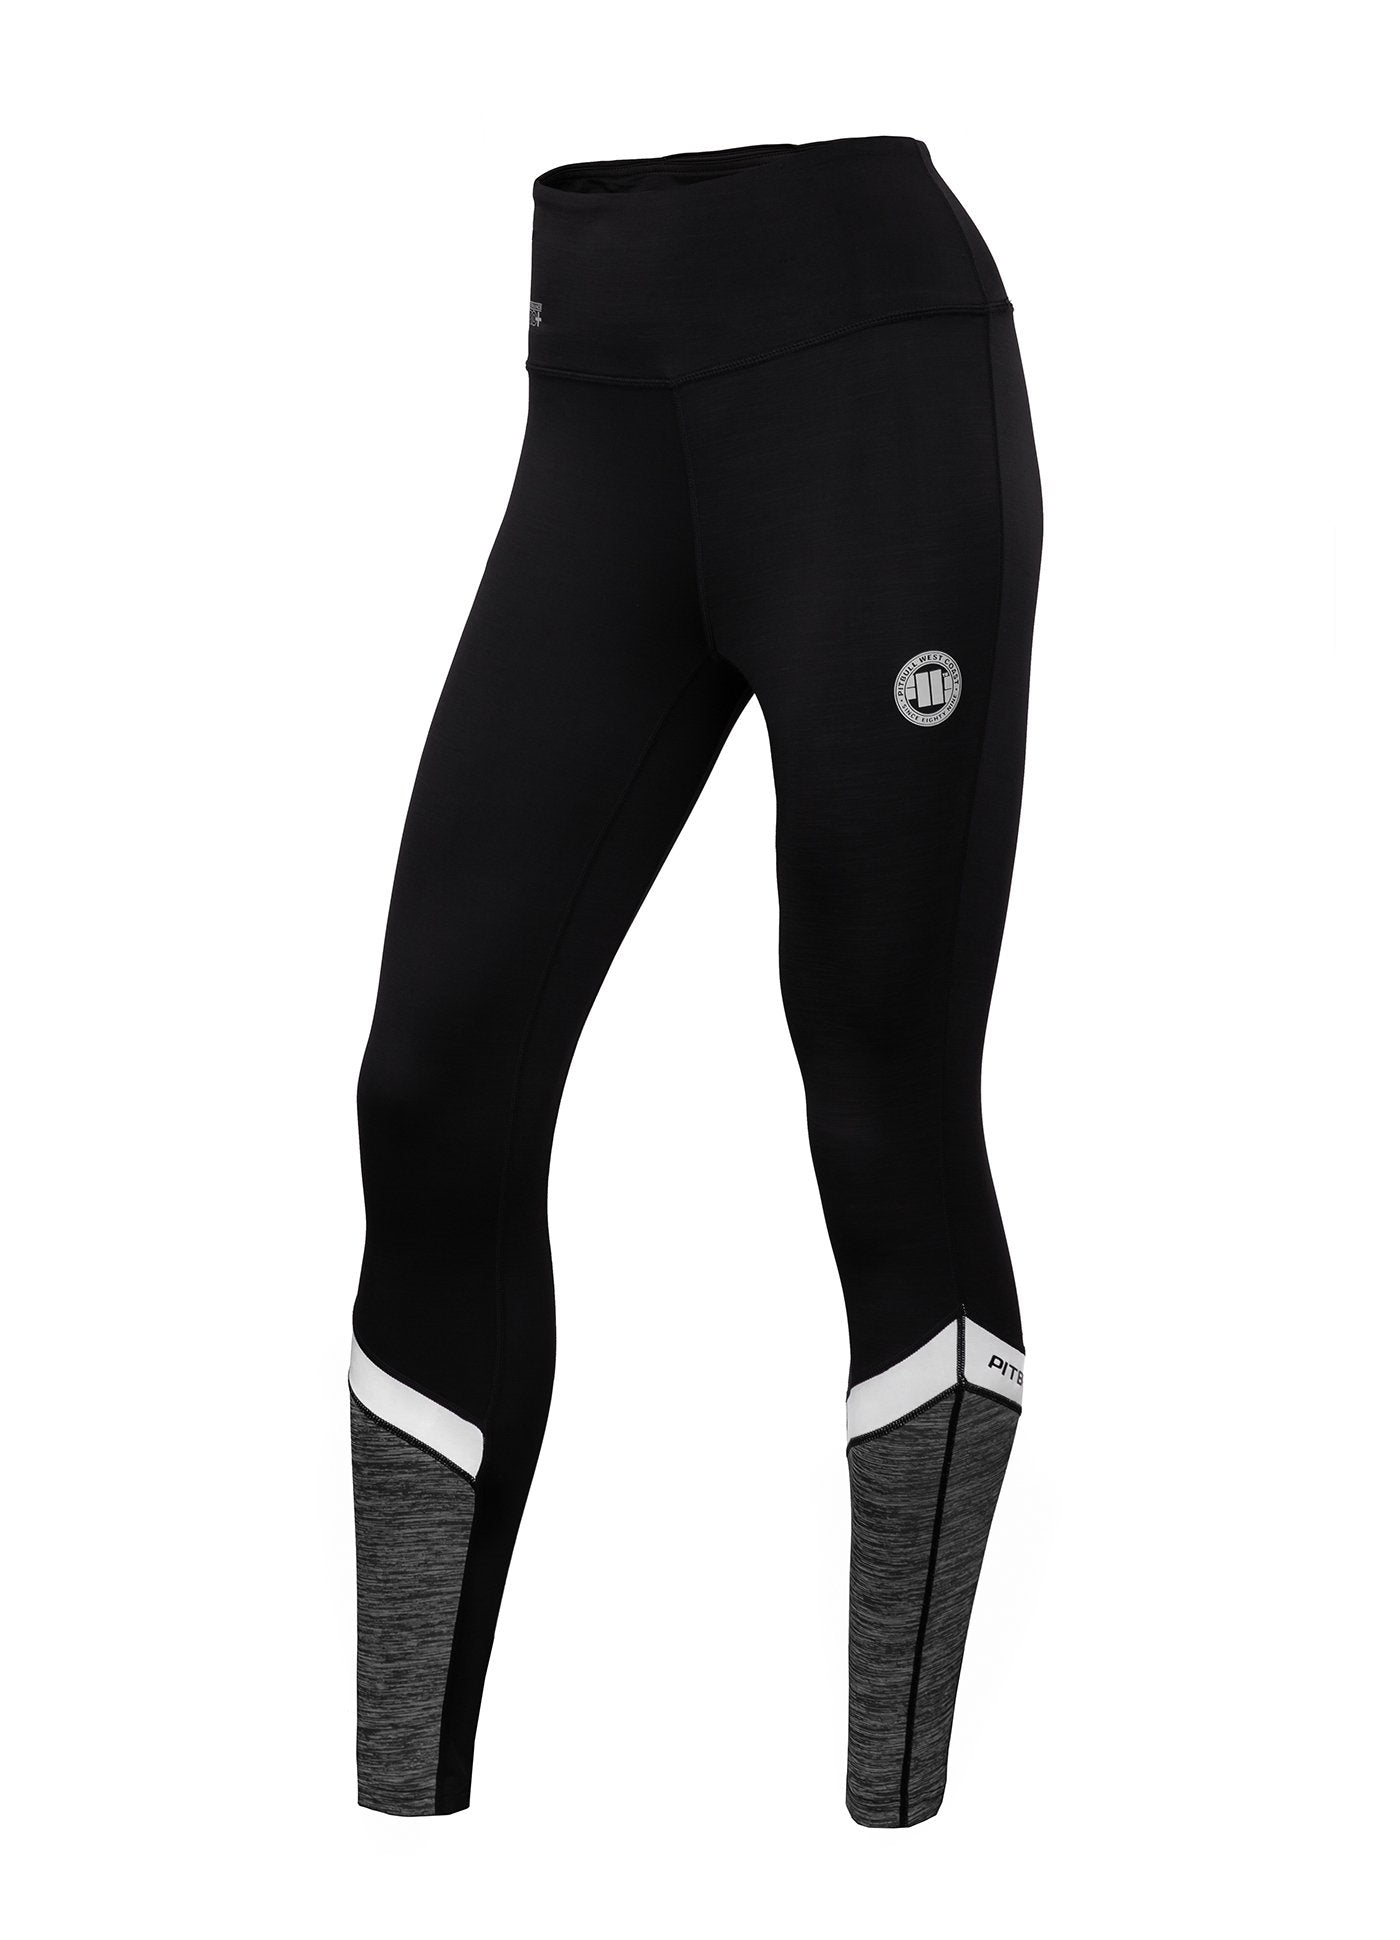 Women's Leggins Compression PRO PLUS MLG Black - Pitbull West Coast U.S.A.